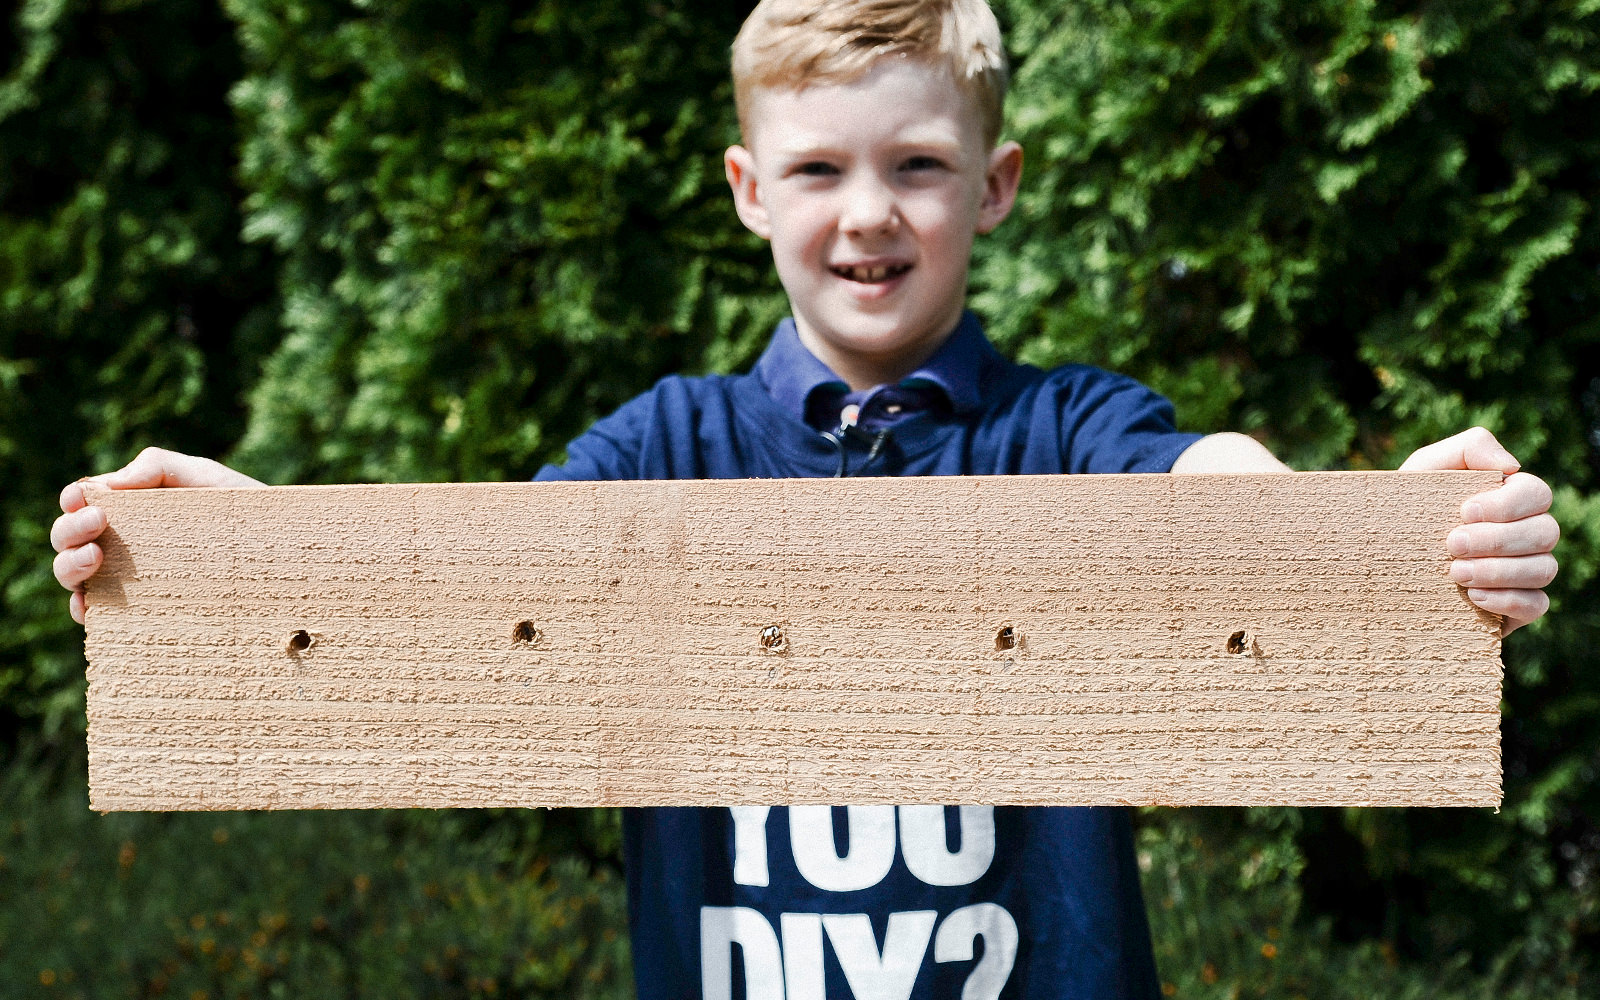 diy kids flower box wood